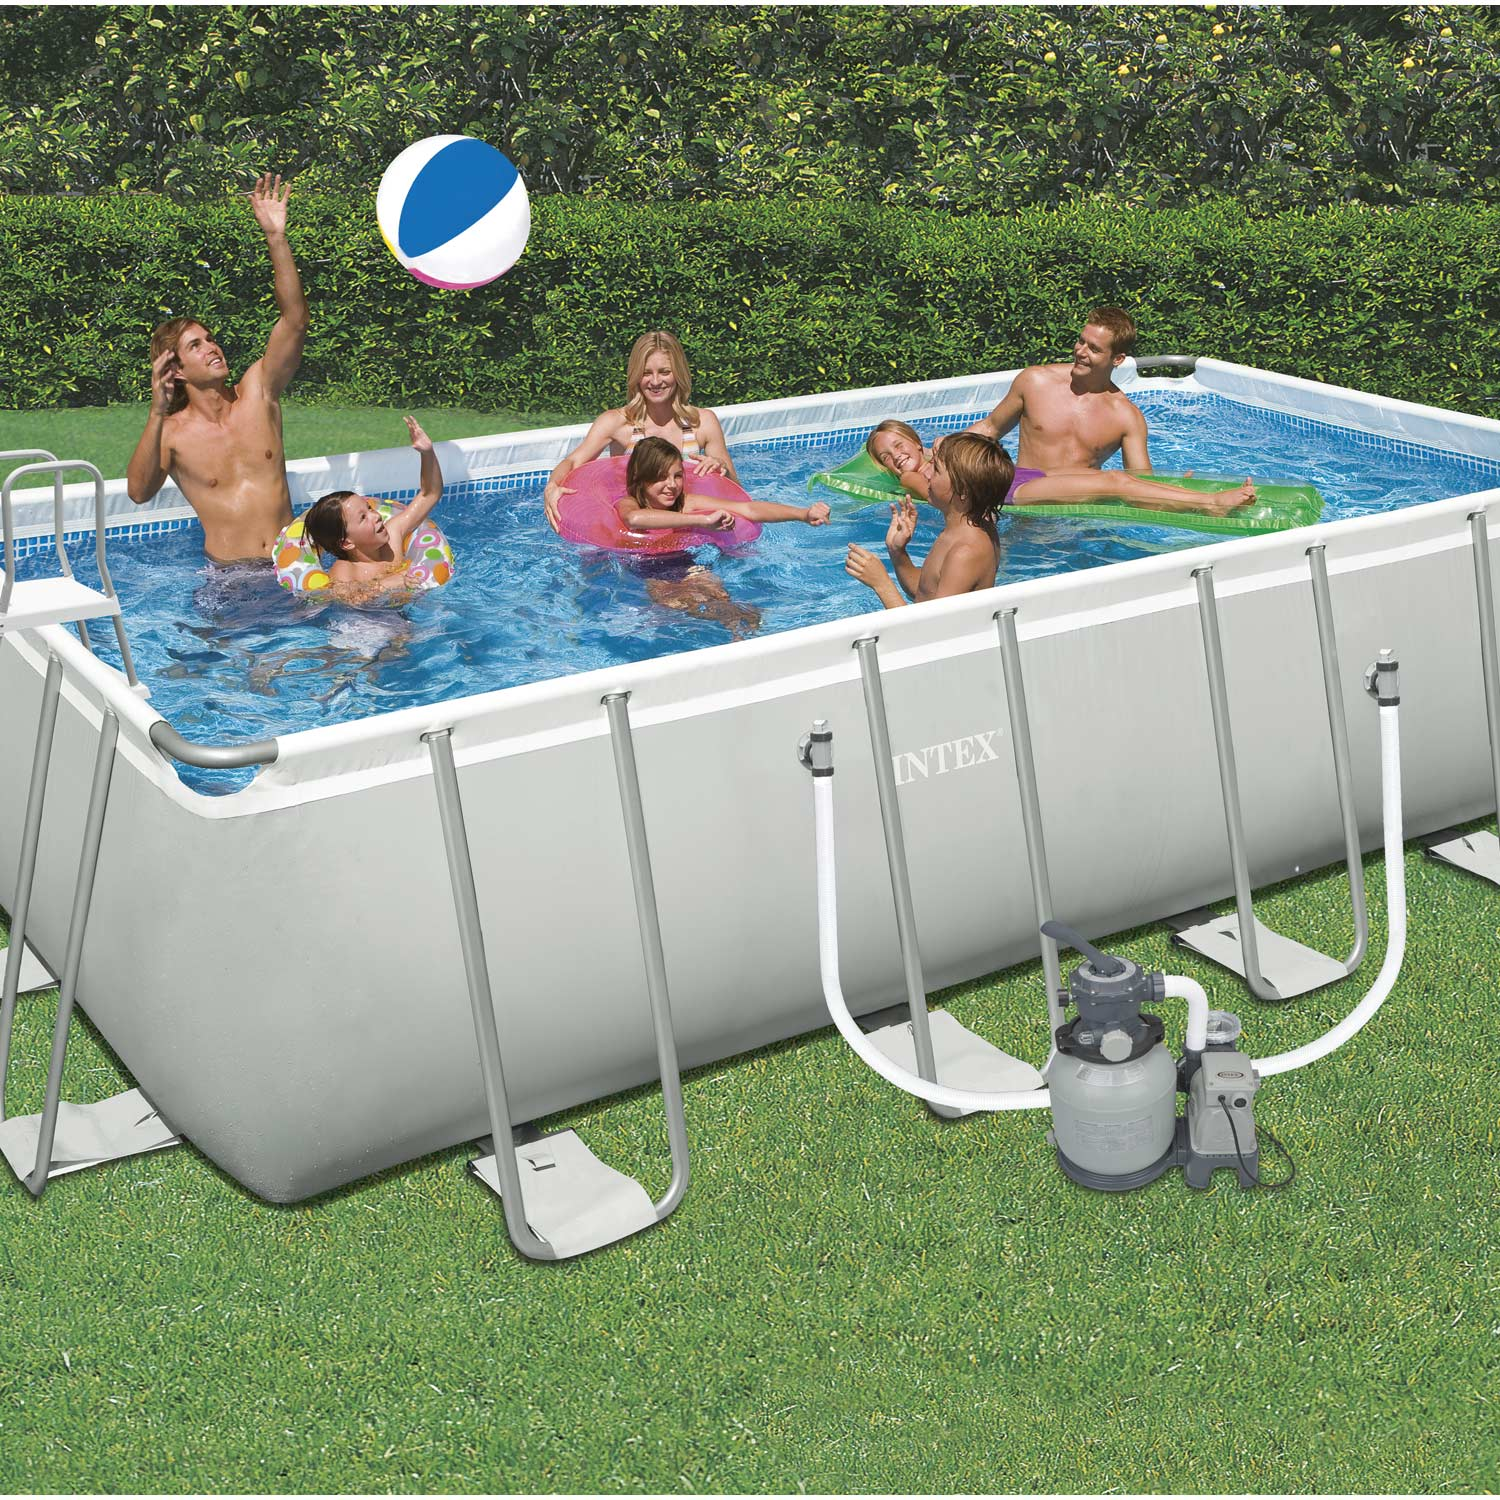 Piscine hors sol autoportante tubulaire intex l x l for Piscine hors sol bois leroy merlin